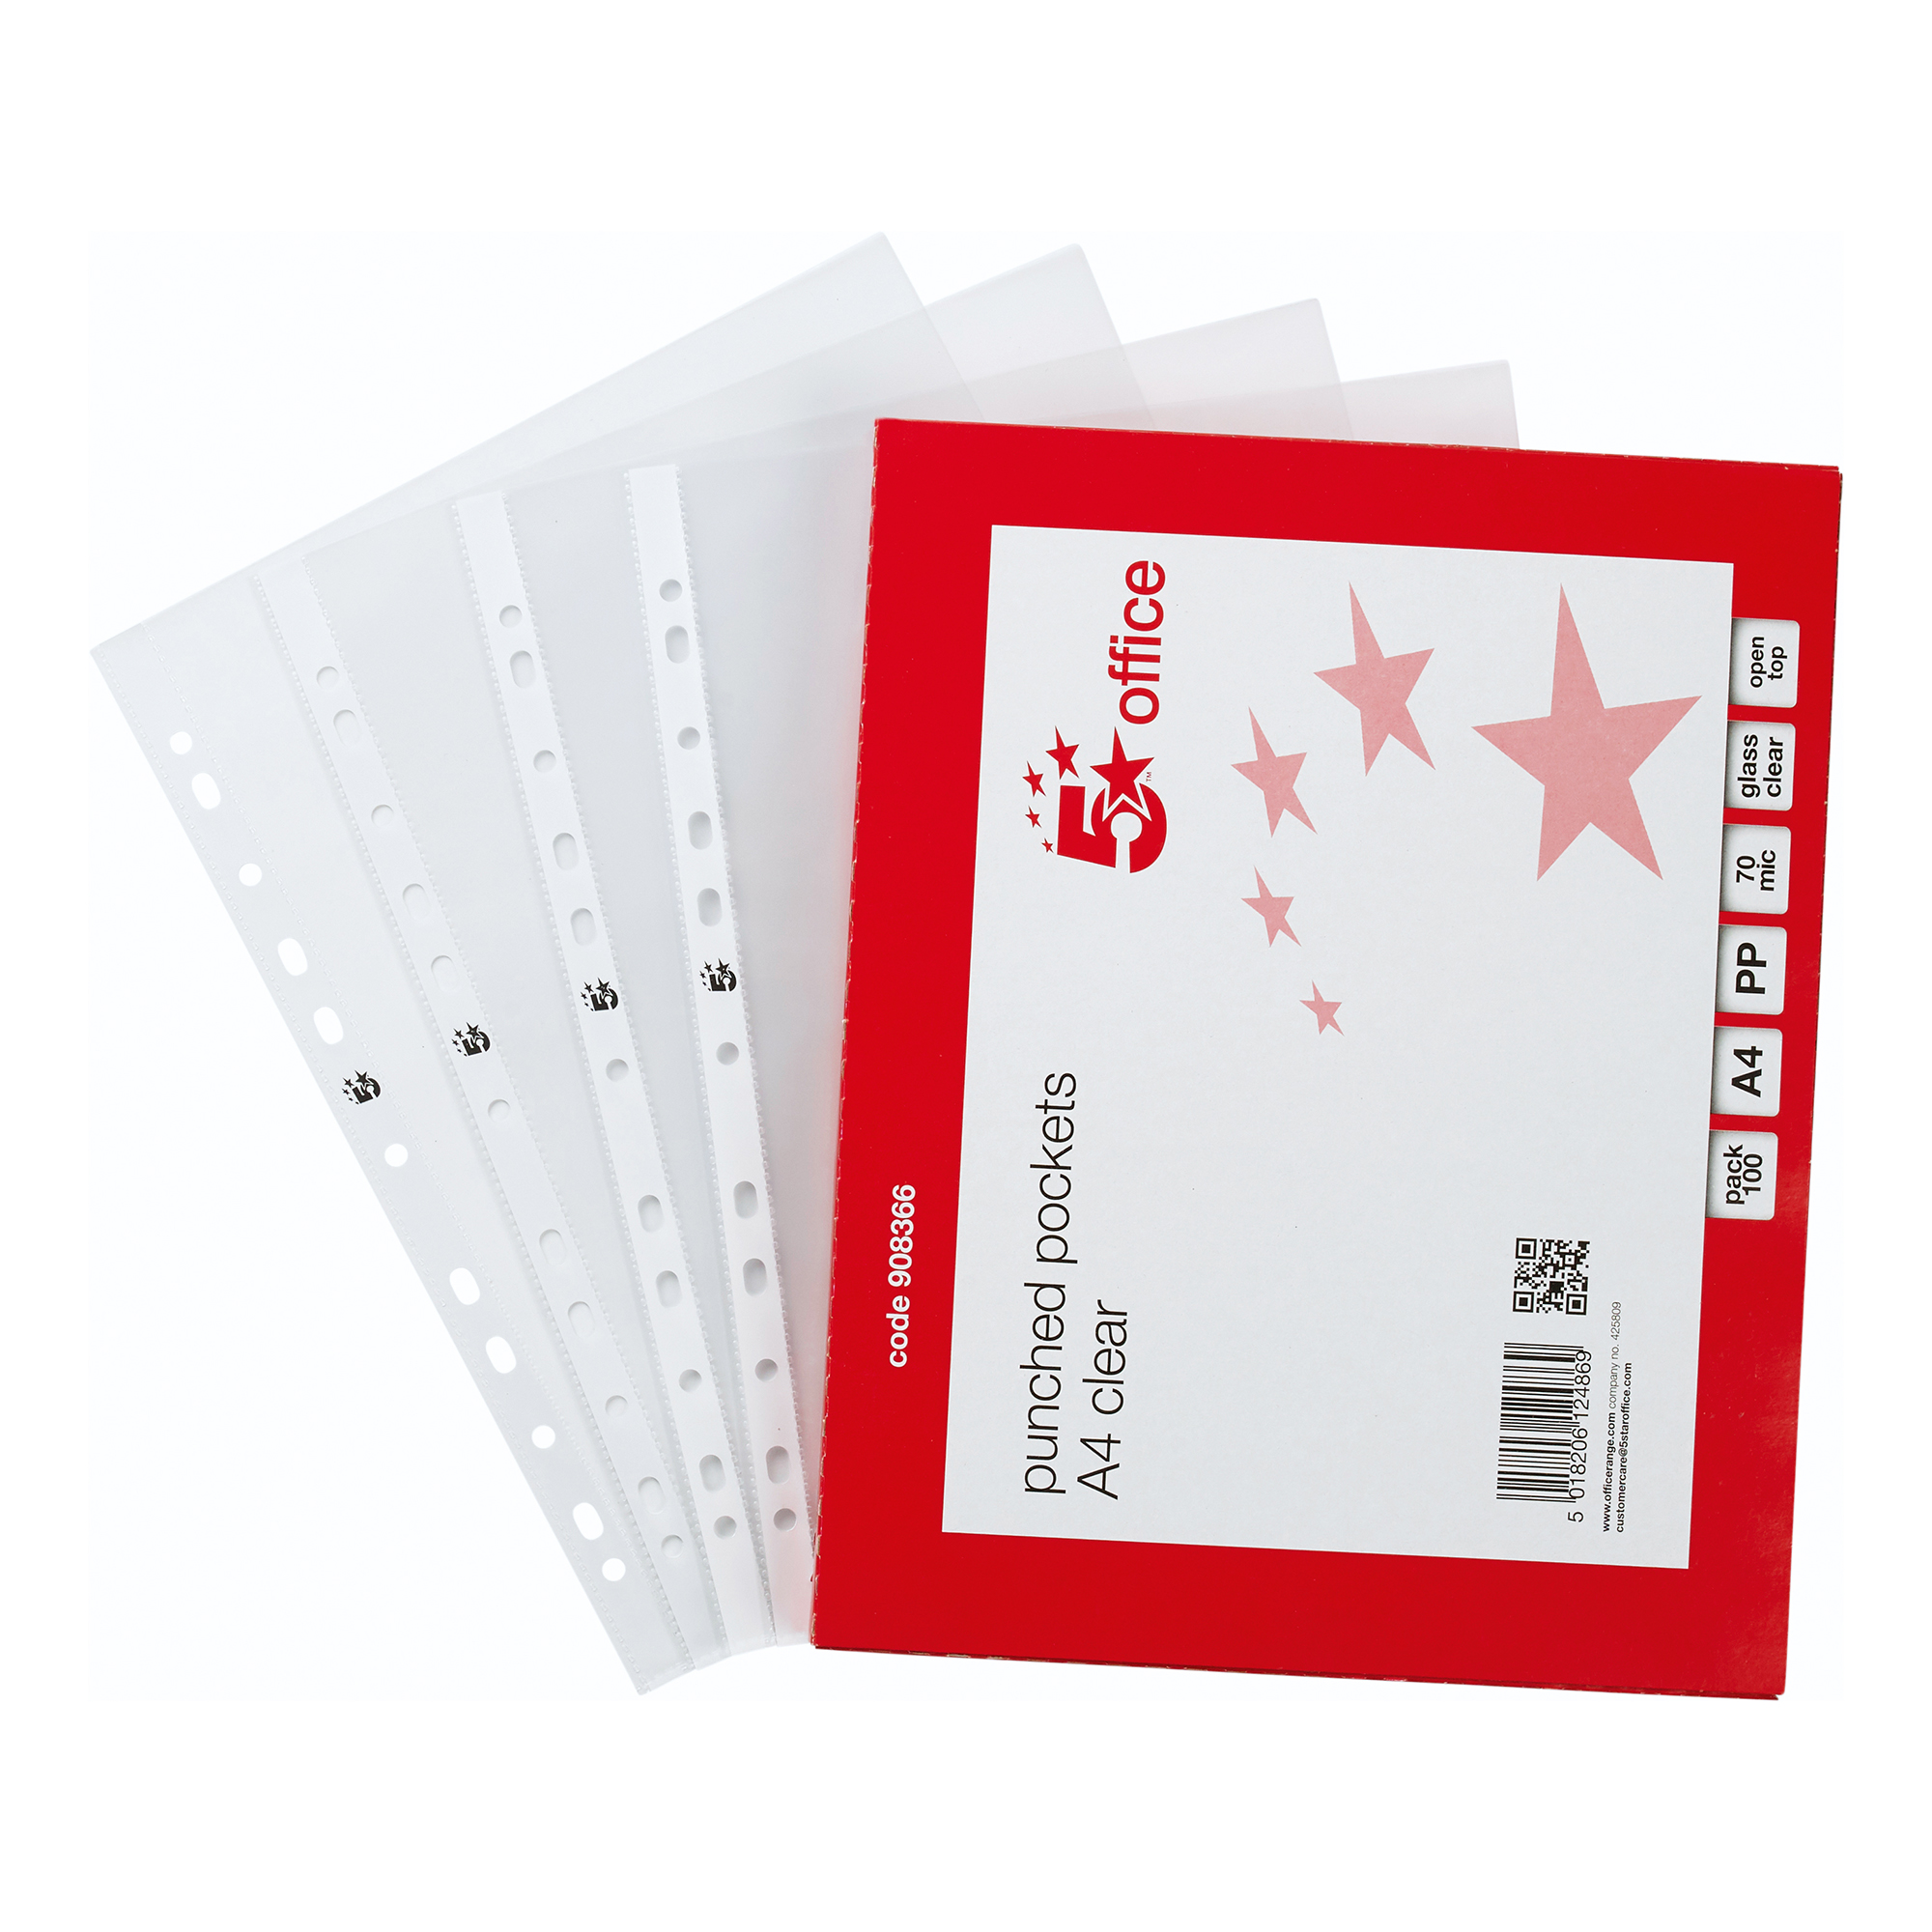 Plastic Pockets 5 Star Office Punched Pocket Polypropylene Top-opening 70 Micron A4 Glass Clear Pack 100